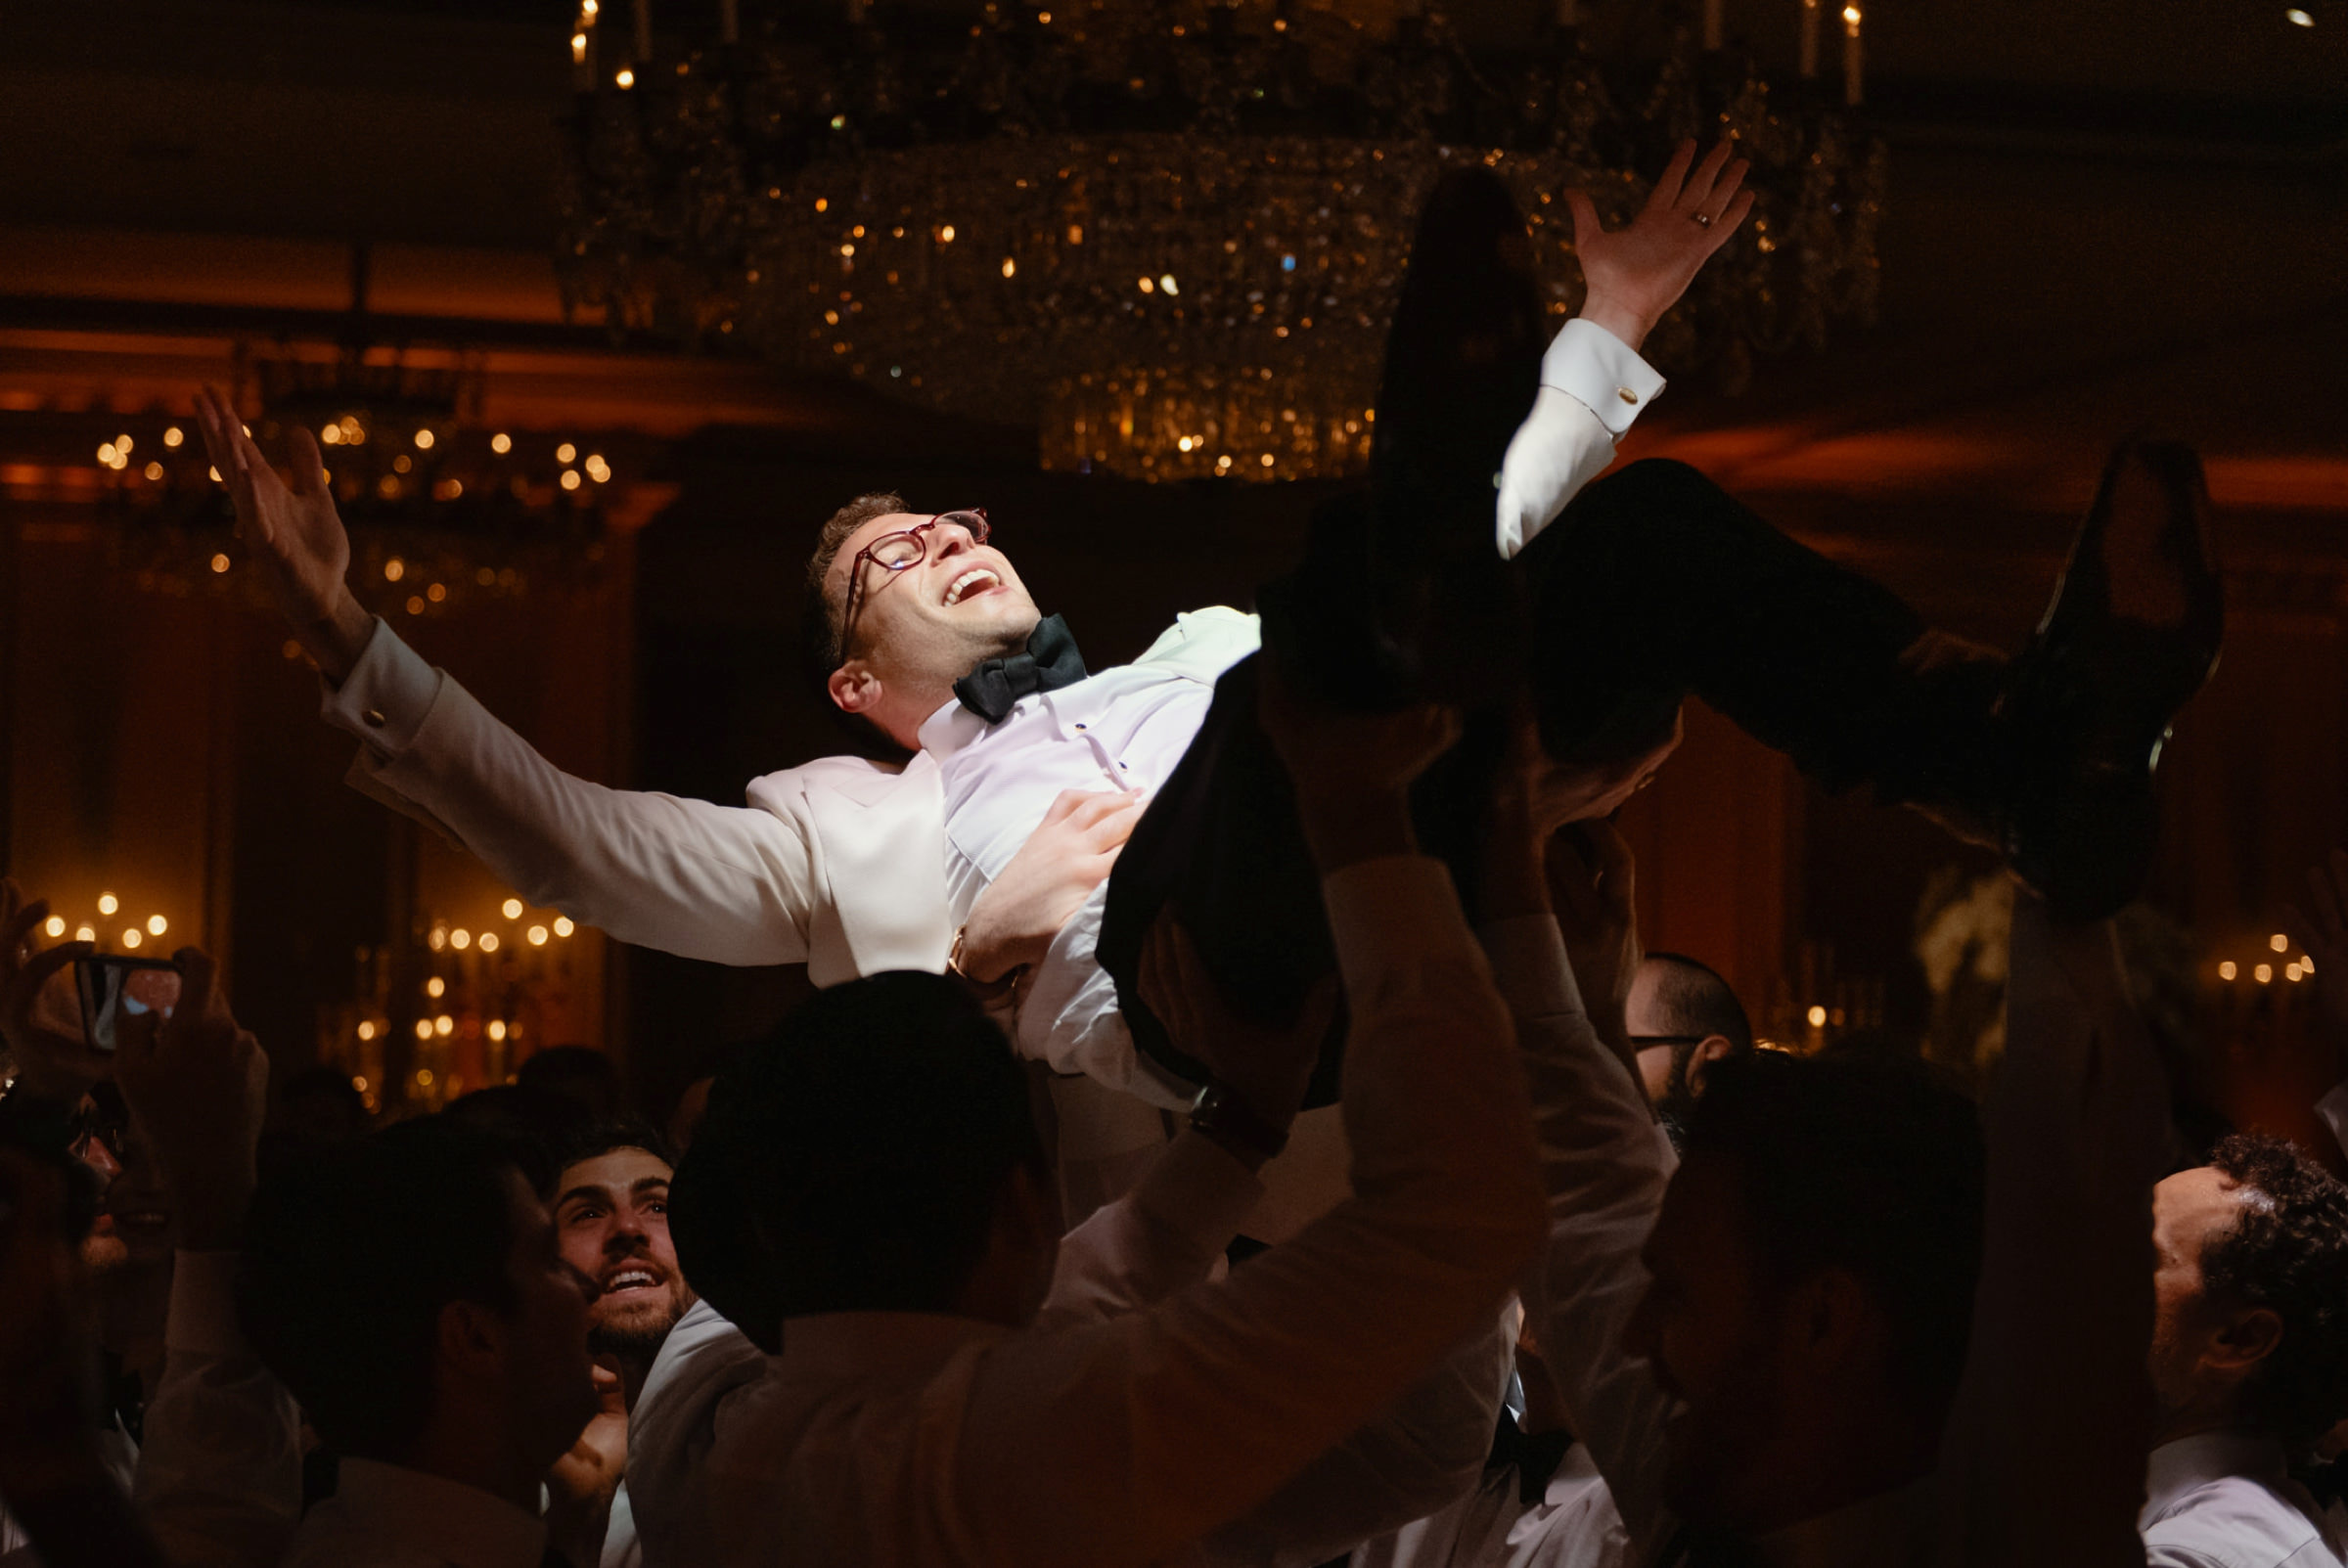 Happy groom held high in the air during reception - photo by Dark Roux